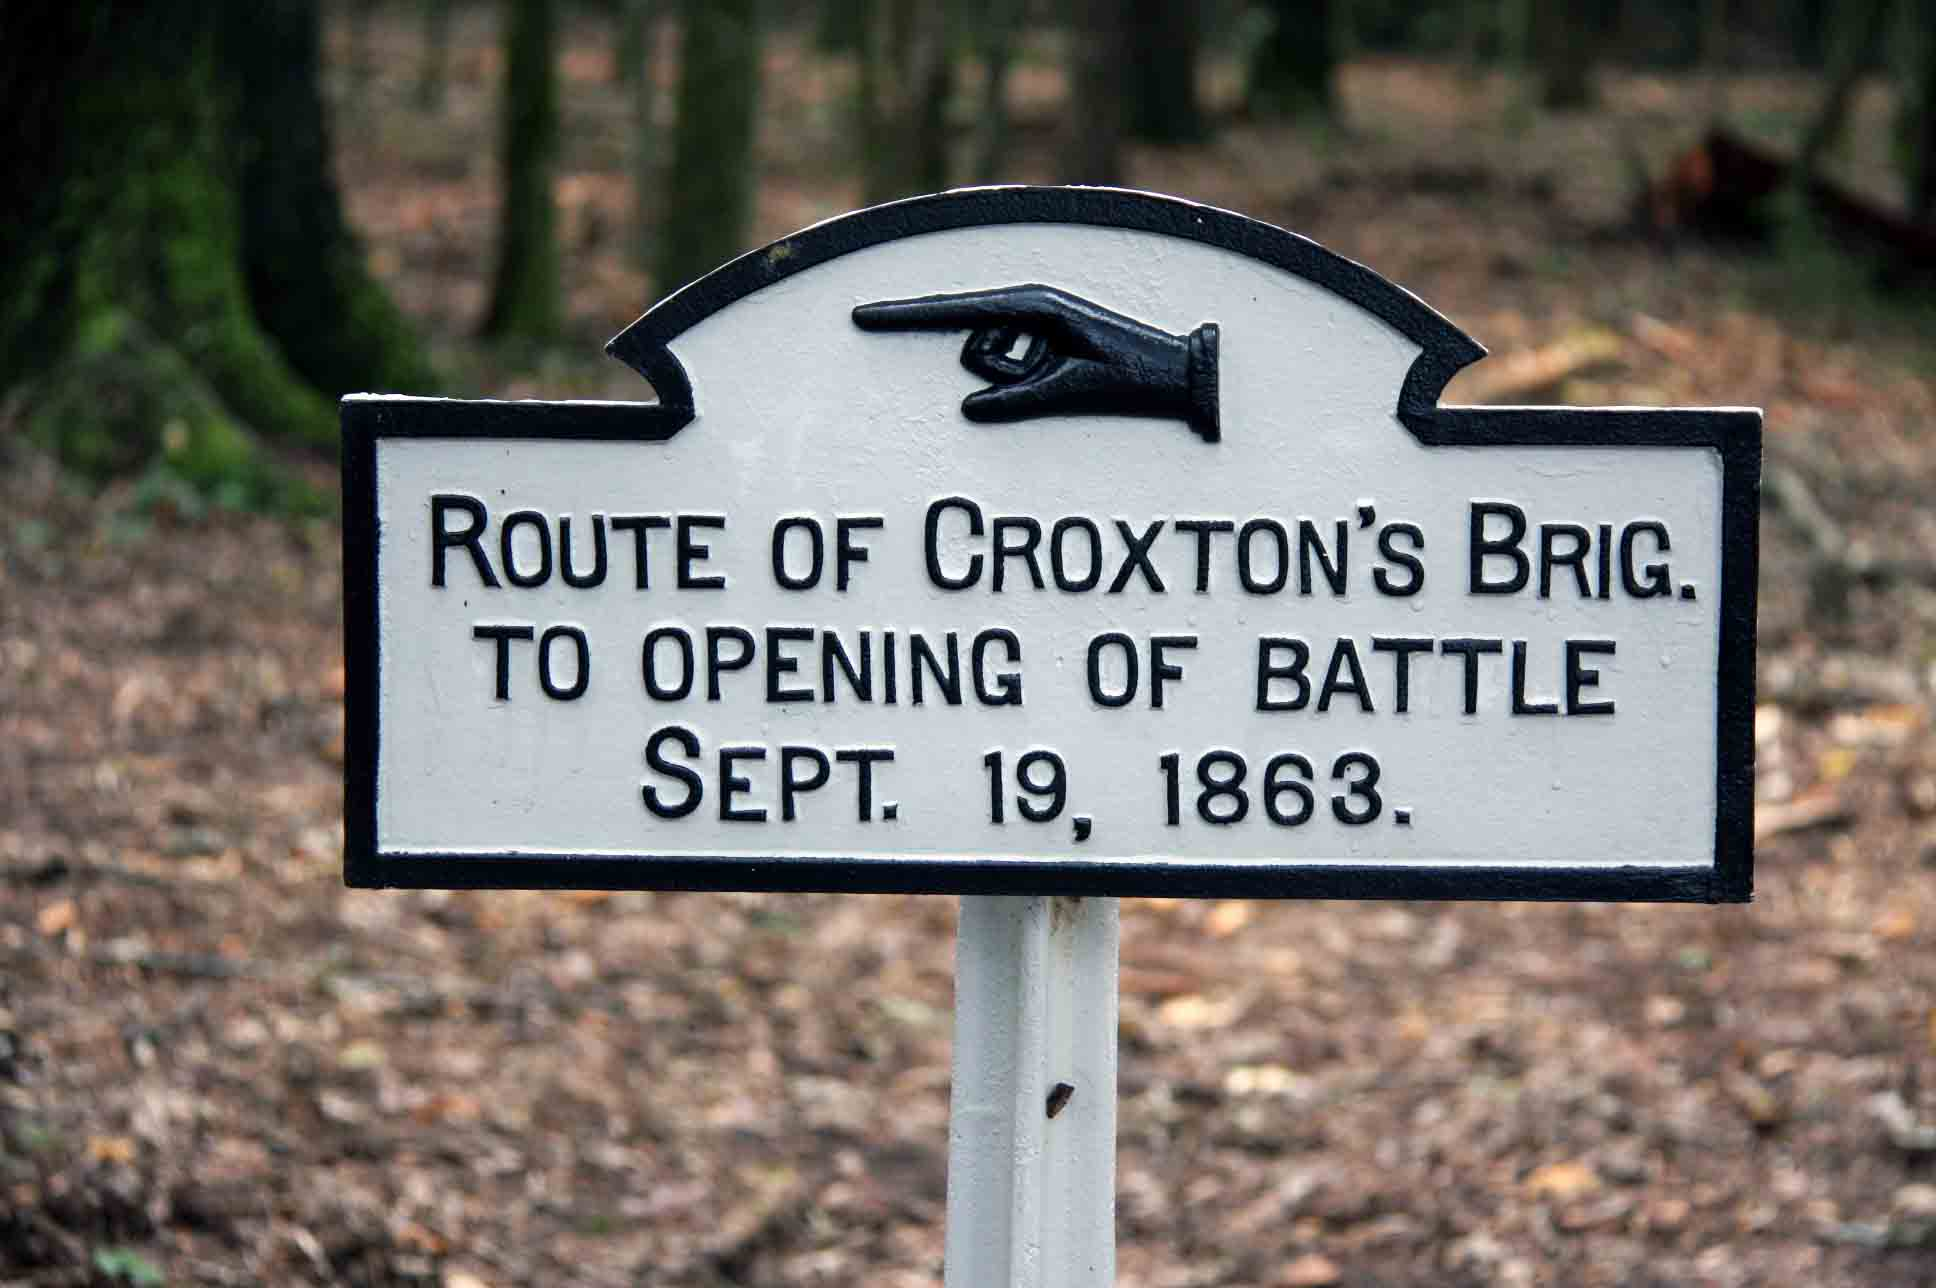 Route of Croxton's Brigade Sign, click photo to enlarge.